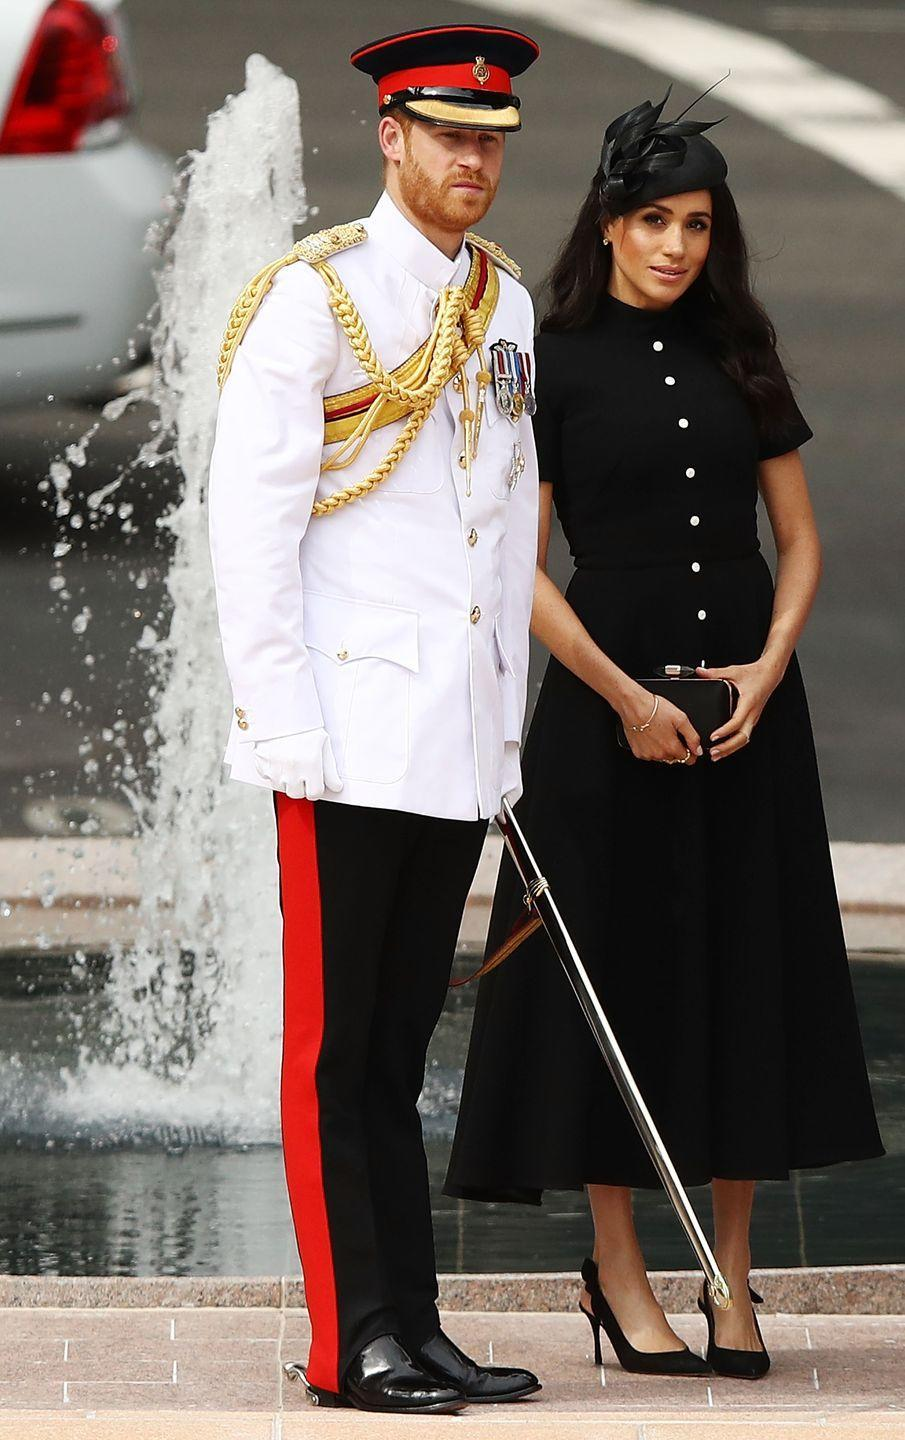 "<p>Harry and Meghan were on hand open the ANZAC memorial, which remembers Australians who served their country, during their royal tour. The Duchess wore a black Emilia Wickstead dress with Philip Treacy fascinator and Tabitha Simmons pumps. </p><p><a class=""link rapid-noclick-resp"" href=""https://go.redirectingat.com?id=74968X1596630&url=https%3A%2F%2Fwww.bloomingdales.com%2Fshop%2Fproduct%2Ftabitha-simmons-womens-millie-slingback-pointed-toe-pumps%3FID%3D2956738&sref=https%3A%2F%2Fwww.townandcountrymag.com%2Fstyle%2Ffashion-trends%2Fg3272%2Fmeghan-markle-preppy-style%2F"" rel=""nofollow noopener"" target=""_blank"" data-ylk=""slk:SHOP NOW"">SHOP NOW</a> <em>Millie Slingback Pumps by Tabitha Simmons, $695</em></p>"